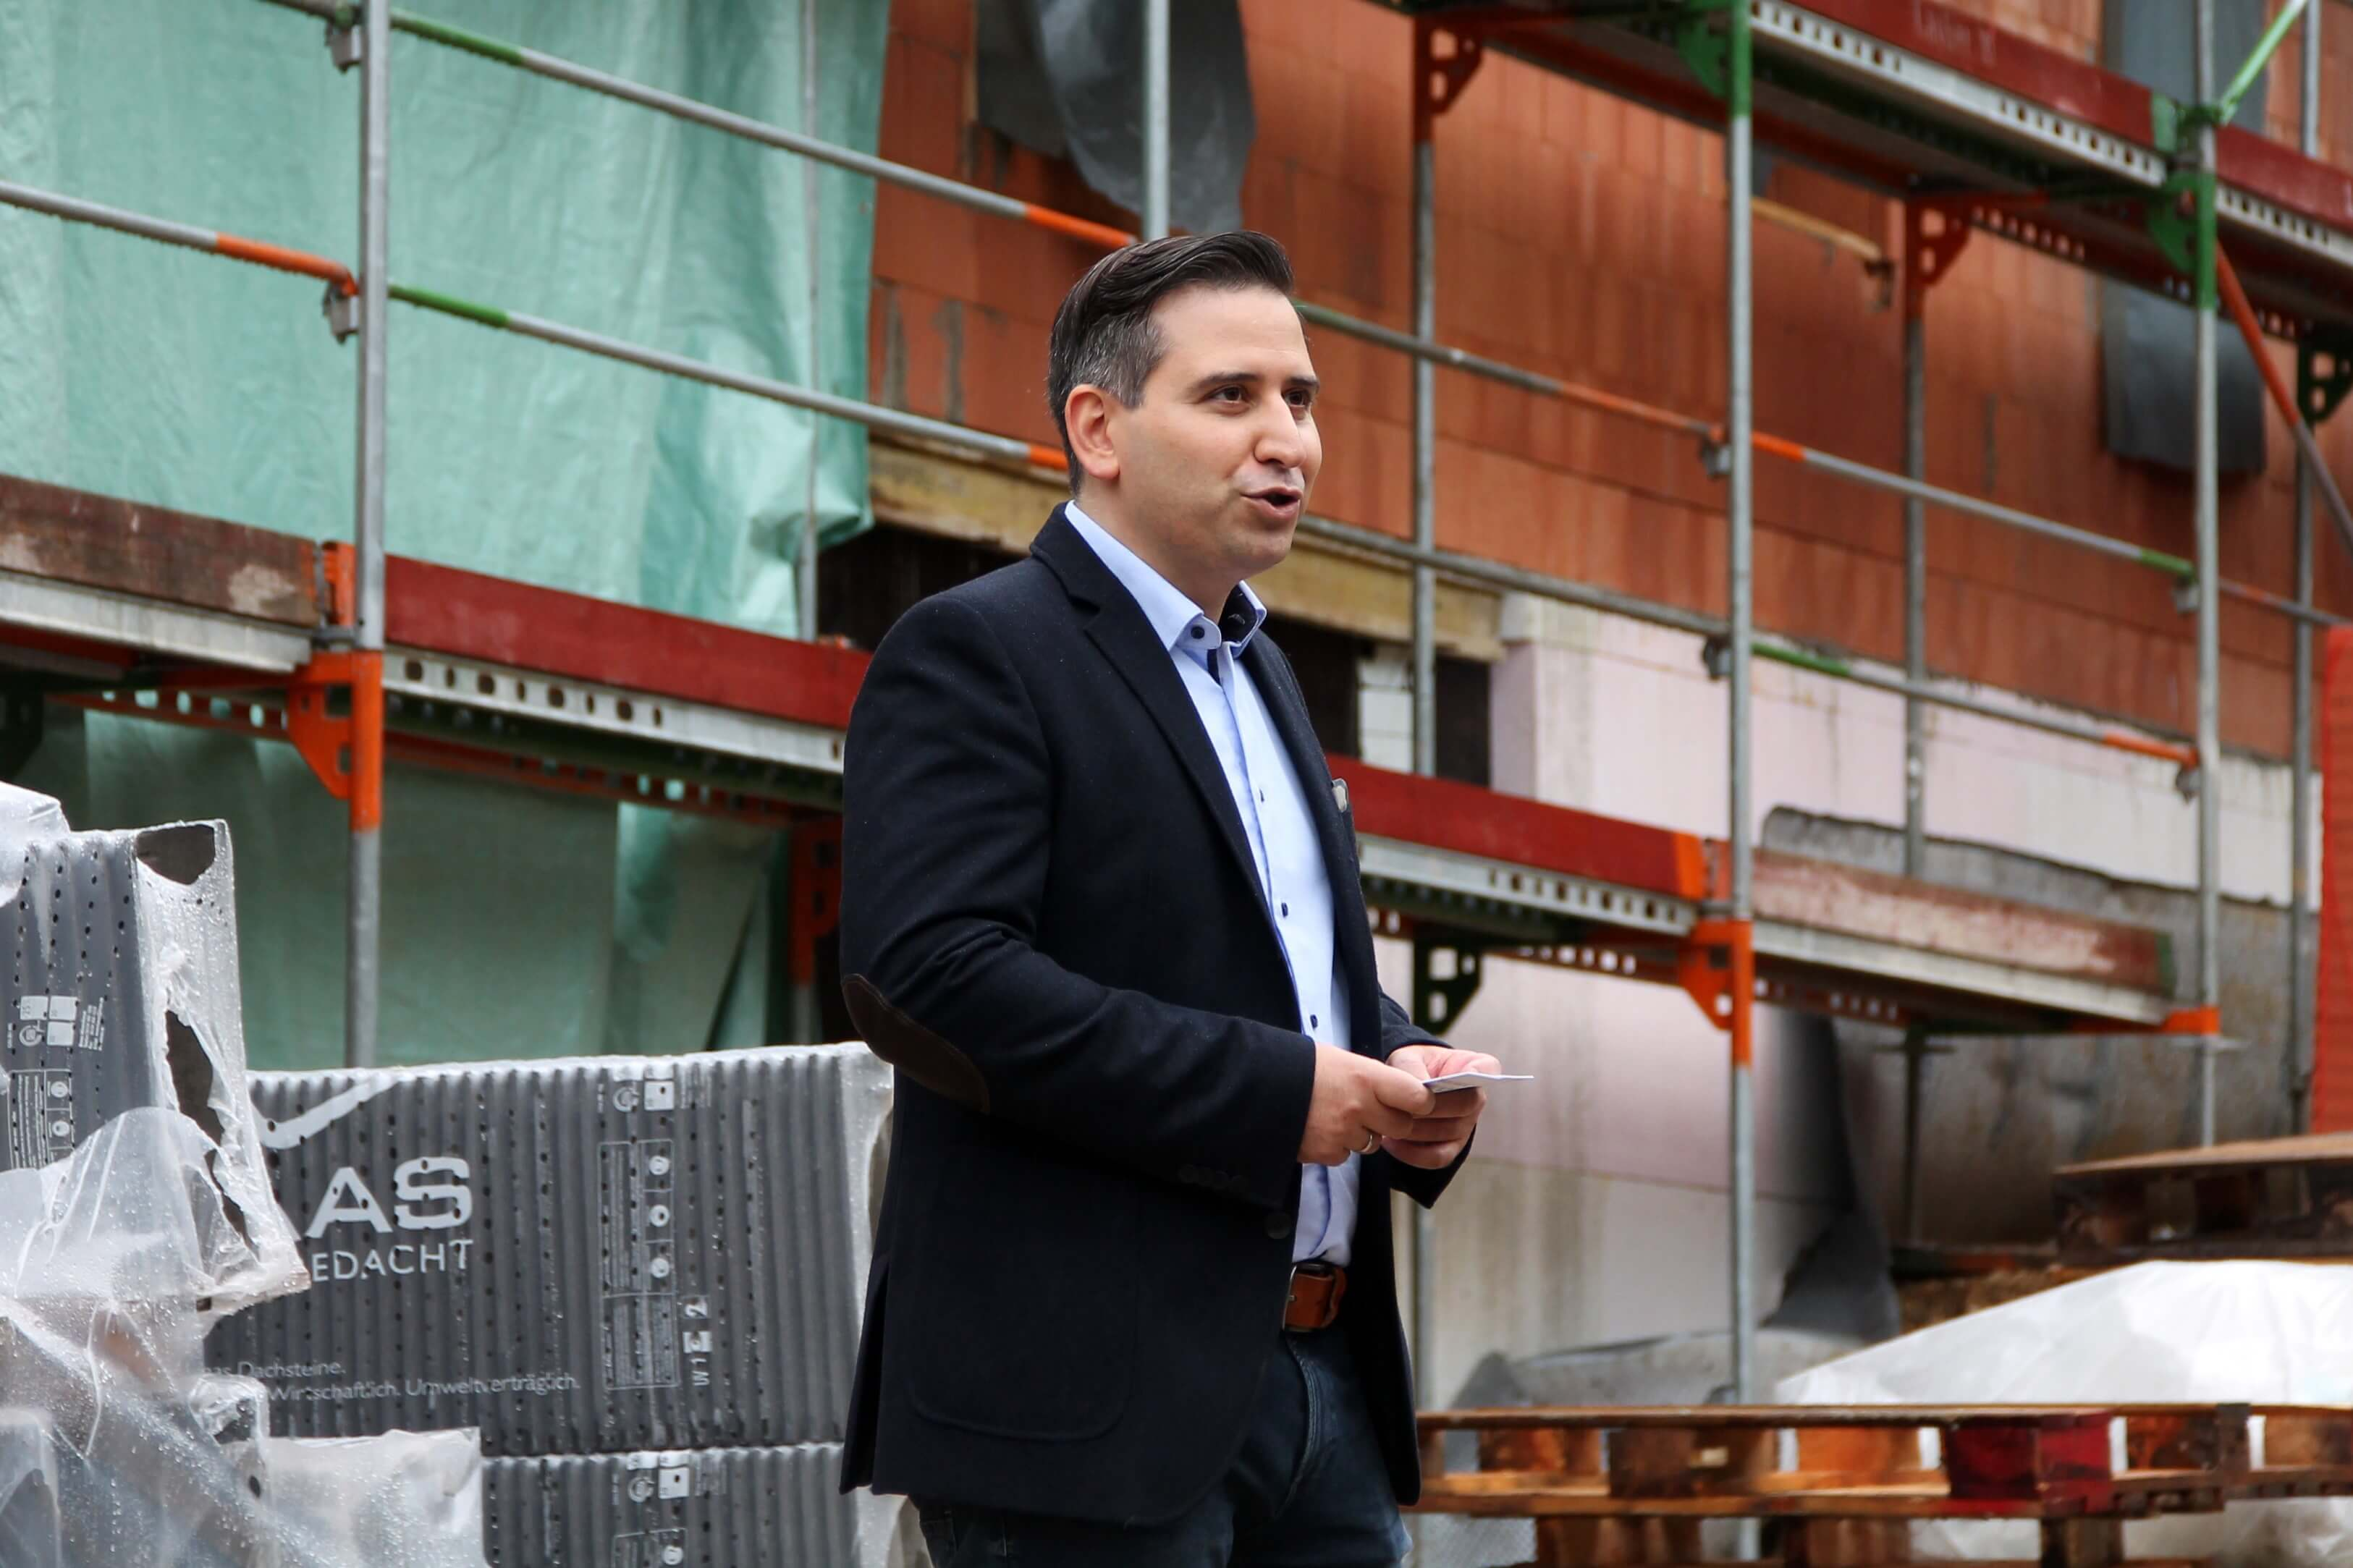 Founder and CEO Mohammad Kabany is giving a speech in front of the bare brickwork of B-Horizon's future headquarters at the topping-out ceremony in Sinzing. He also recalls the challenges which come with such an innovative and complex construction project.